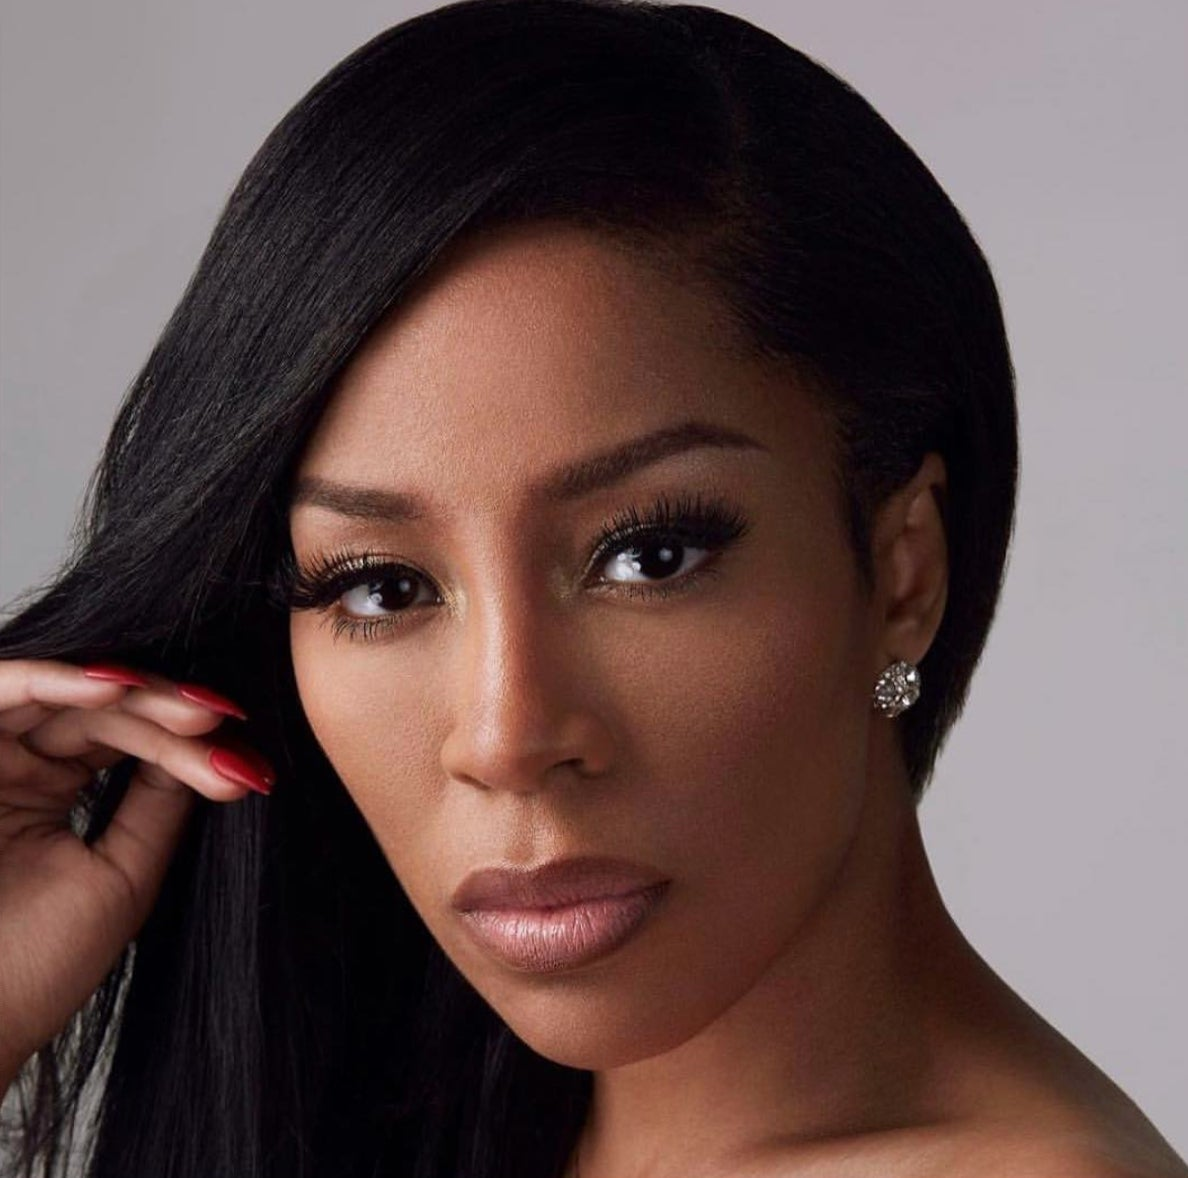 K. Michelle Opens Up About Why She's Starting IVF Fertility Treatment to Have Twin Girls